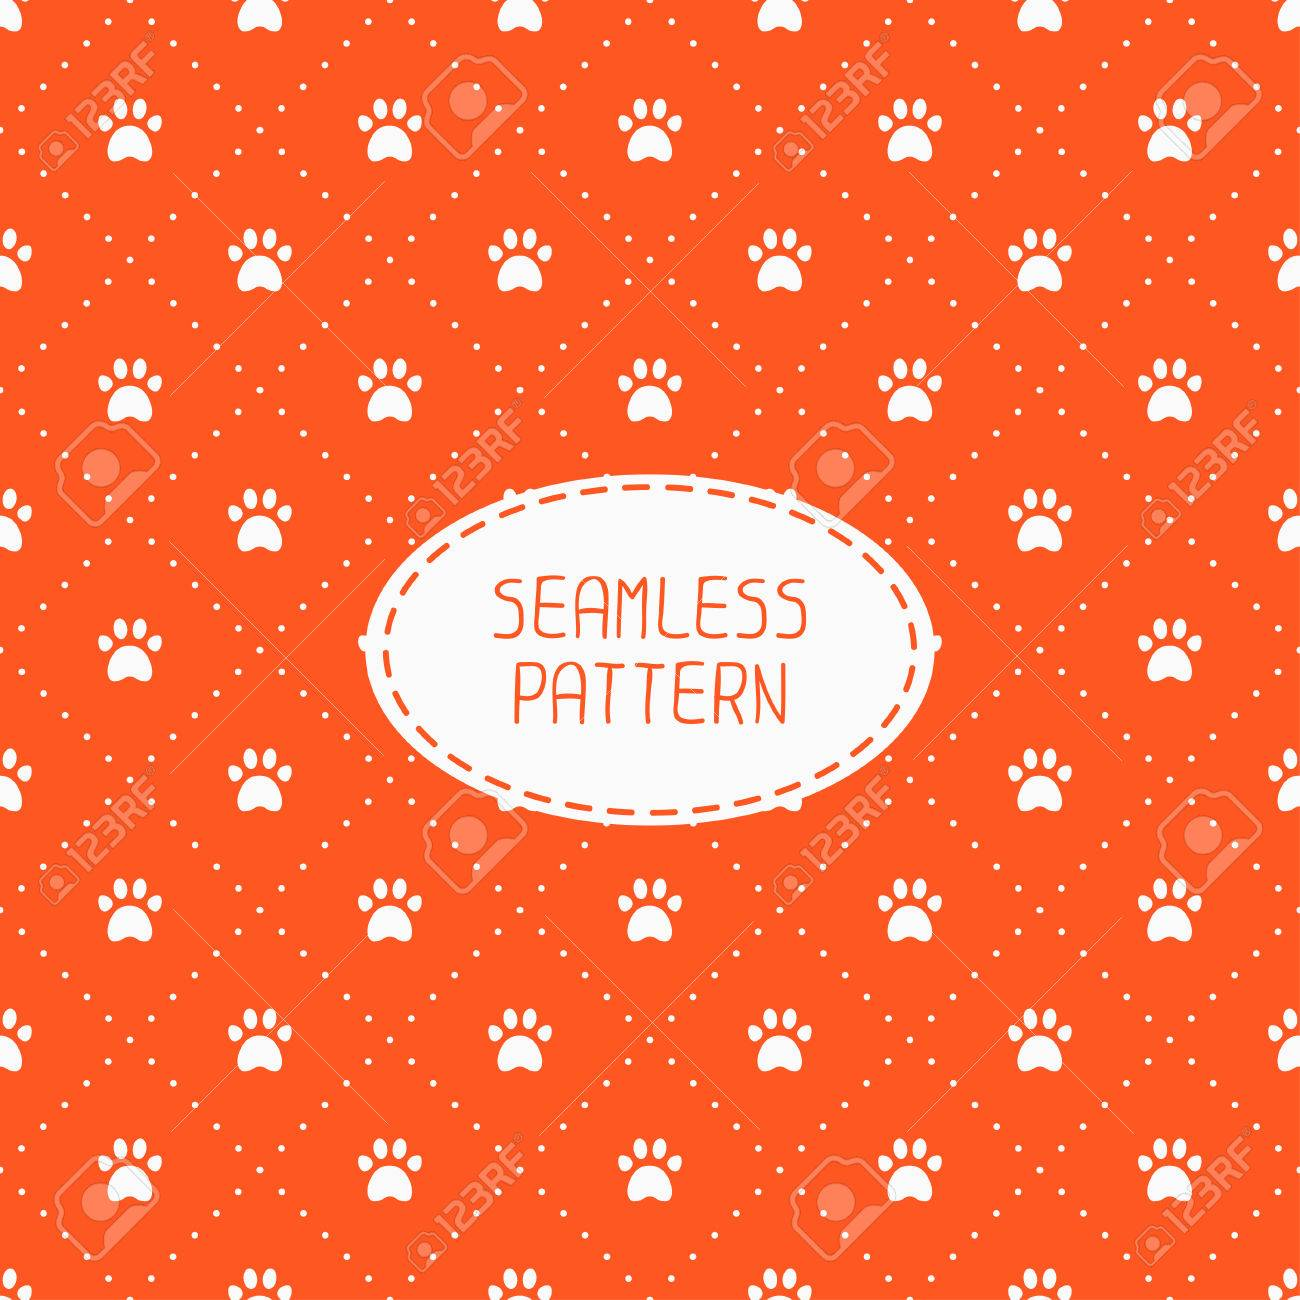 Seamless Pattern With Animal Footprints Cat Dog Wrapping Paper For Scrapbook